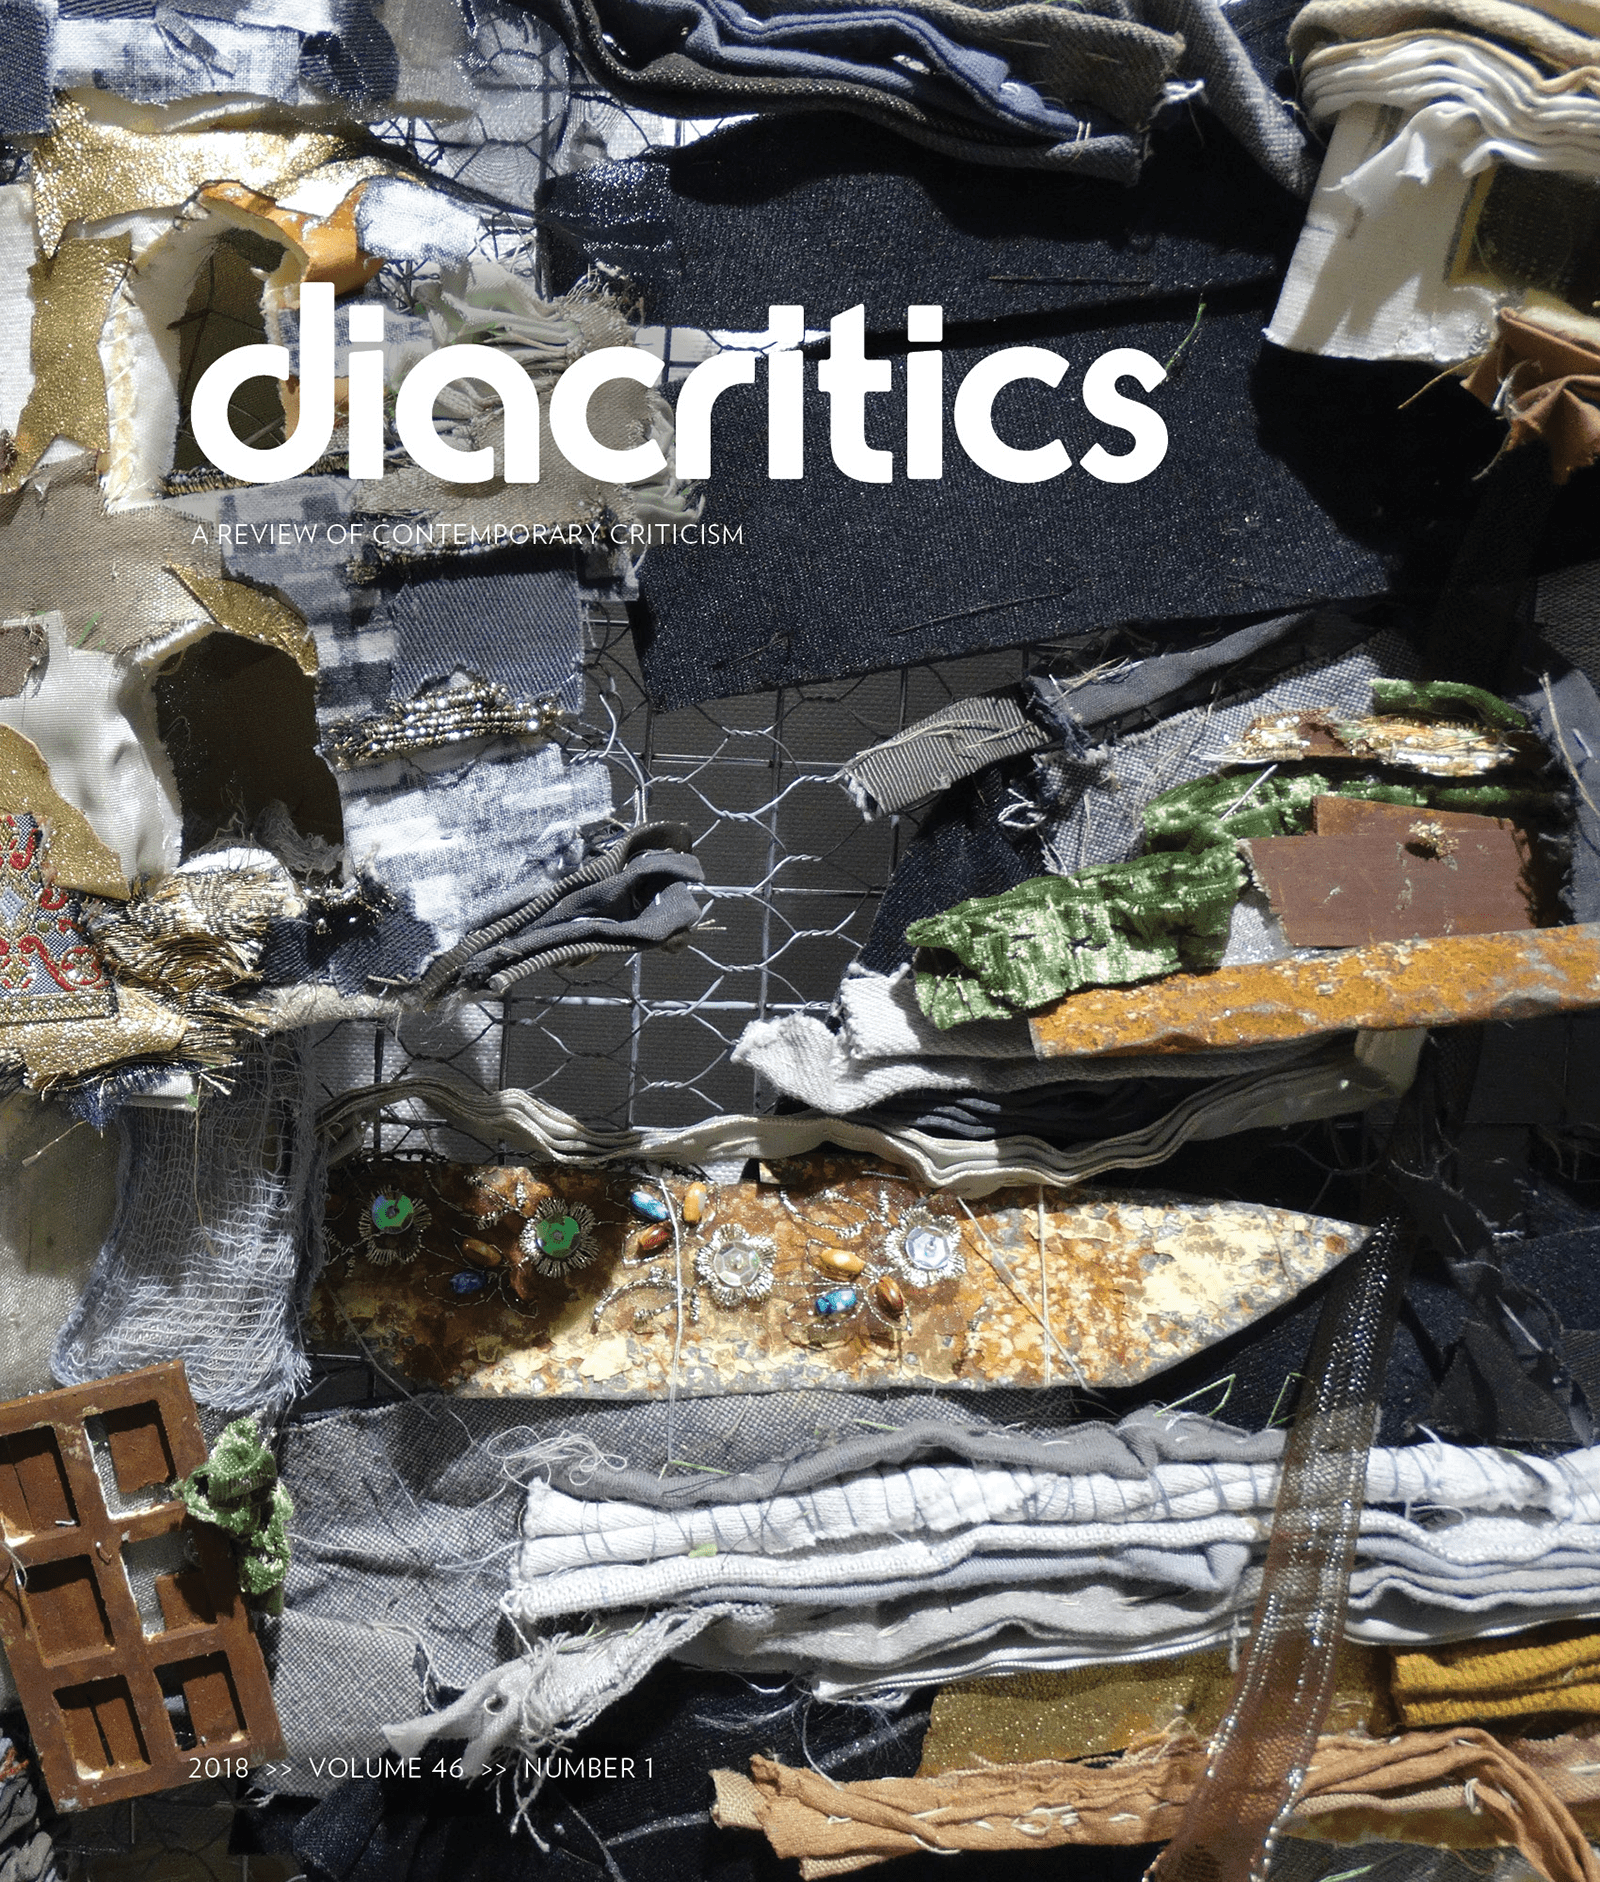 DIACRITICS VOLUME 46 NUMBER 1 2018